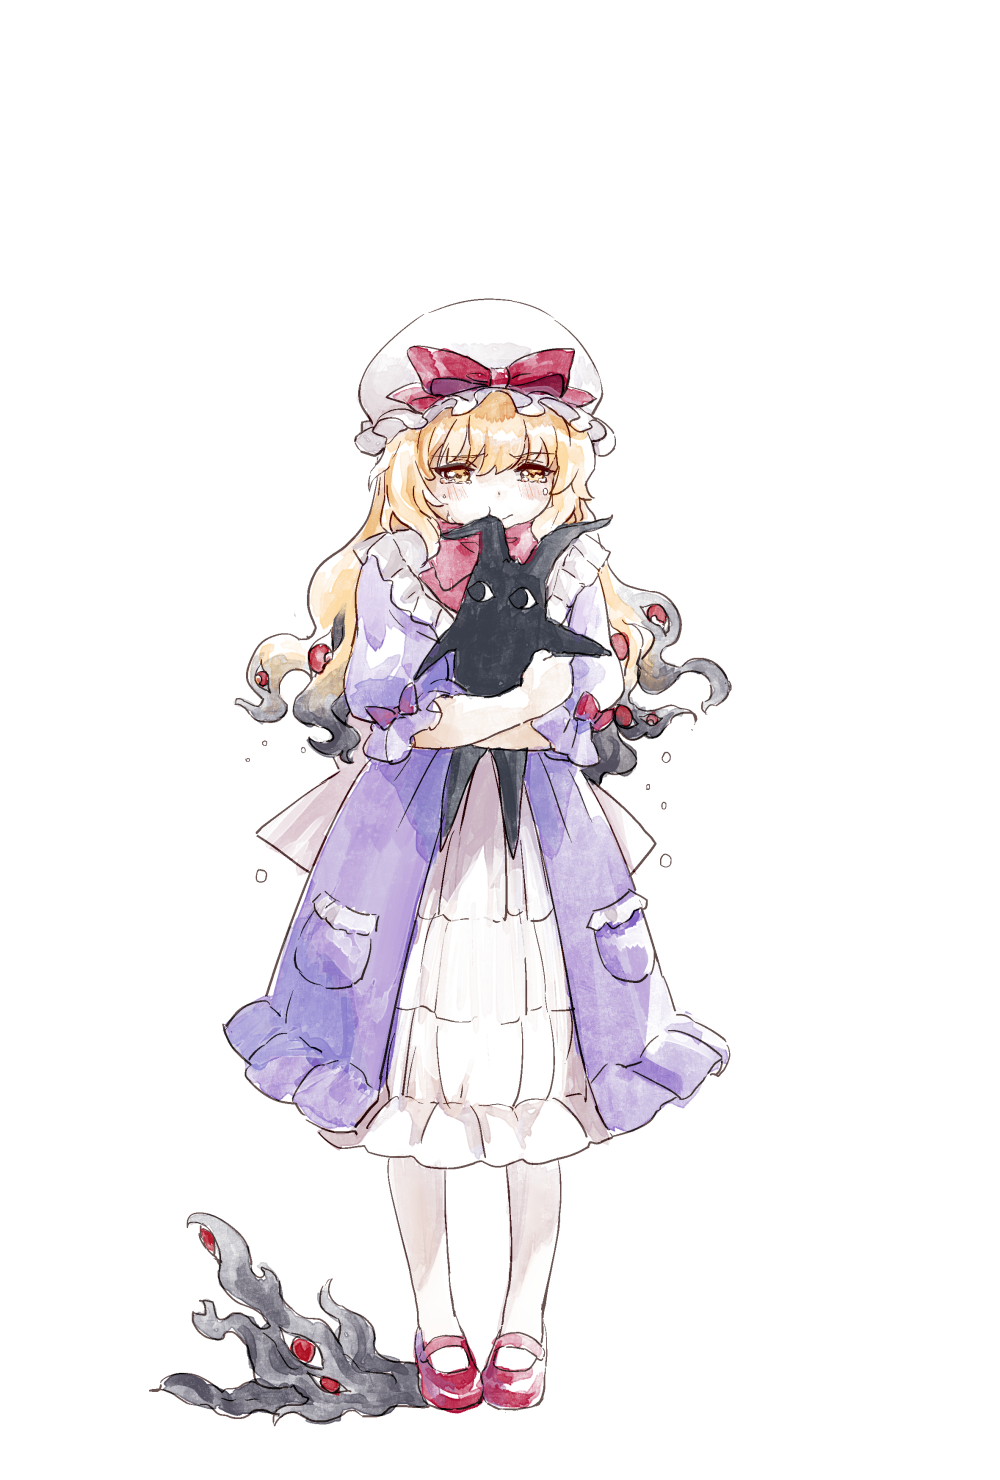 1girl bangs black_hair blonde_hair blush bow child crying crying_with_eyes_open dress extra_eyes eyes frilled_dress frills full_body gradient_hair hat hat_bow hat_ribbon highres karaori long_hair looking_down mary_janes mob_cap multicolored_hair object_hug pantyhose pigeon-toed pocket pout puffy_short_sleeves puffy_sleeves purple_dress red_bow red_footwear red_ribbon ribbon shoes short_sleeves simple_background solo standing stuffed_toy tears touhou two-tone_hair white_background white_headwear white_legwear yakumo_yukari yellow_eyes younger